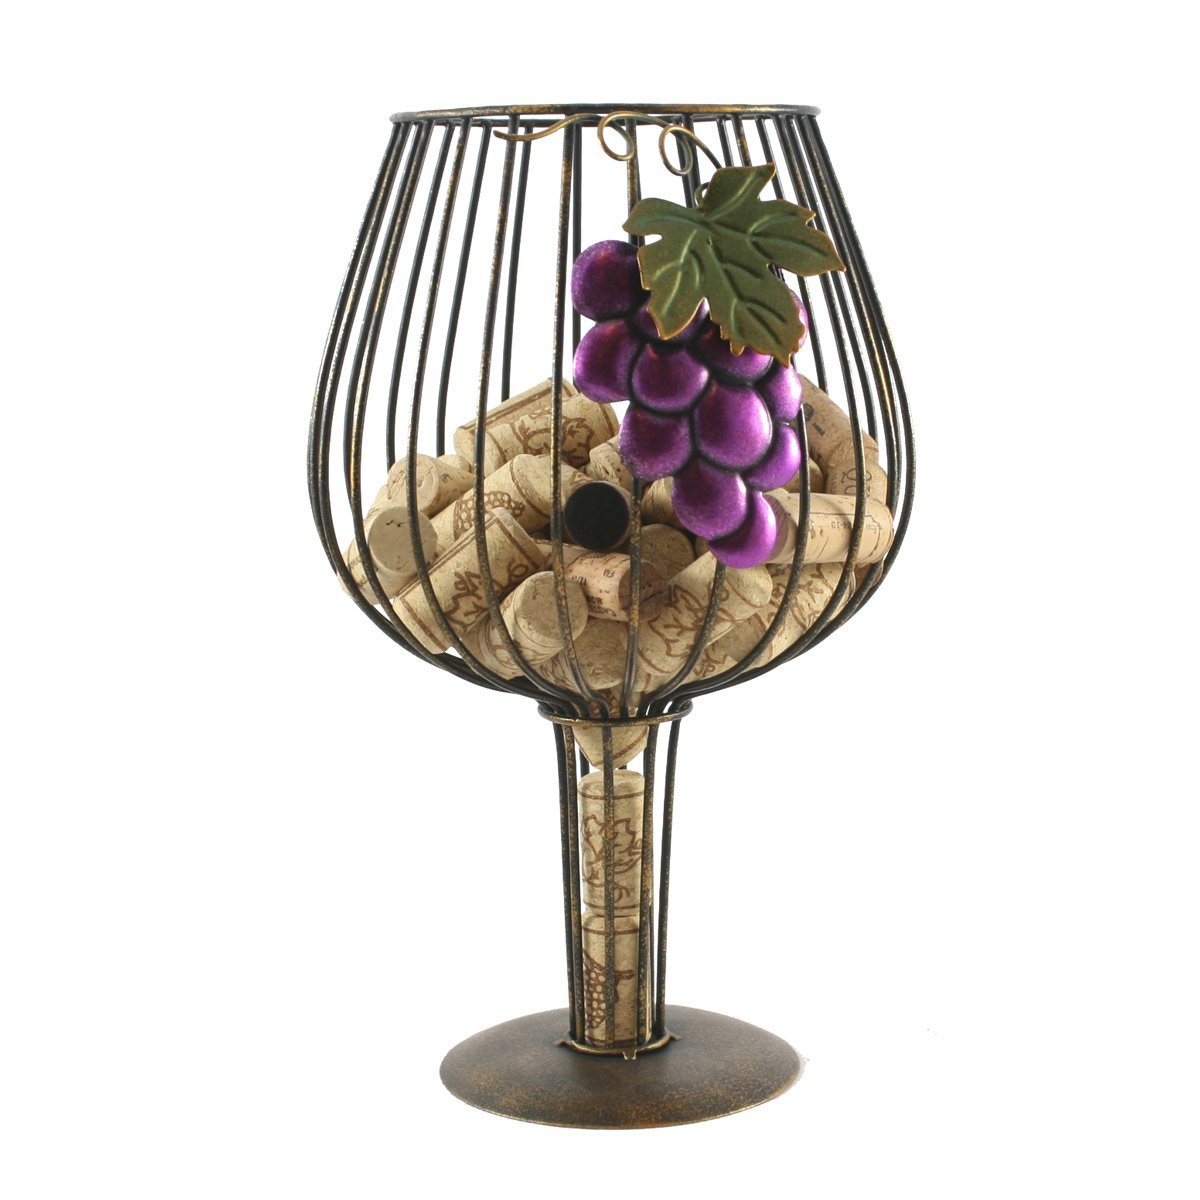 Big Wine Glass Cork Holder for Wine Lovers By Thirteen Chefs